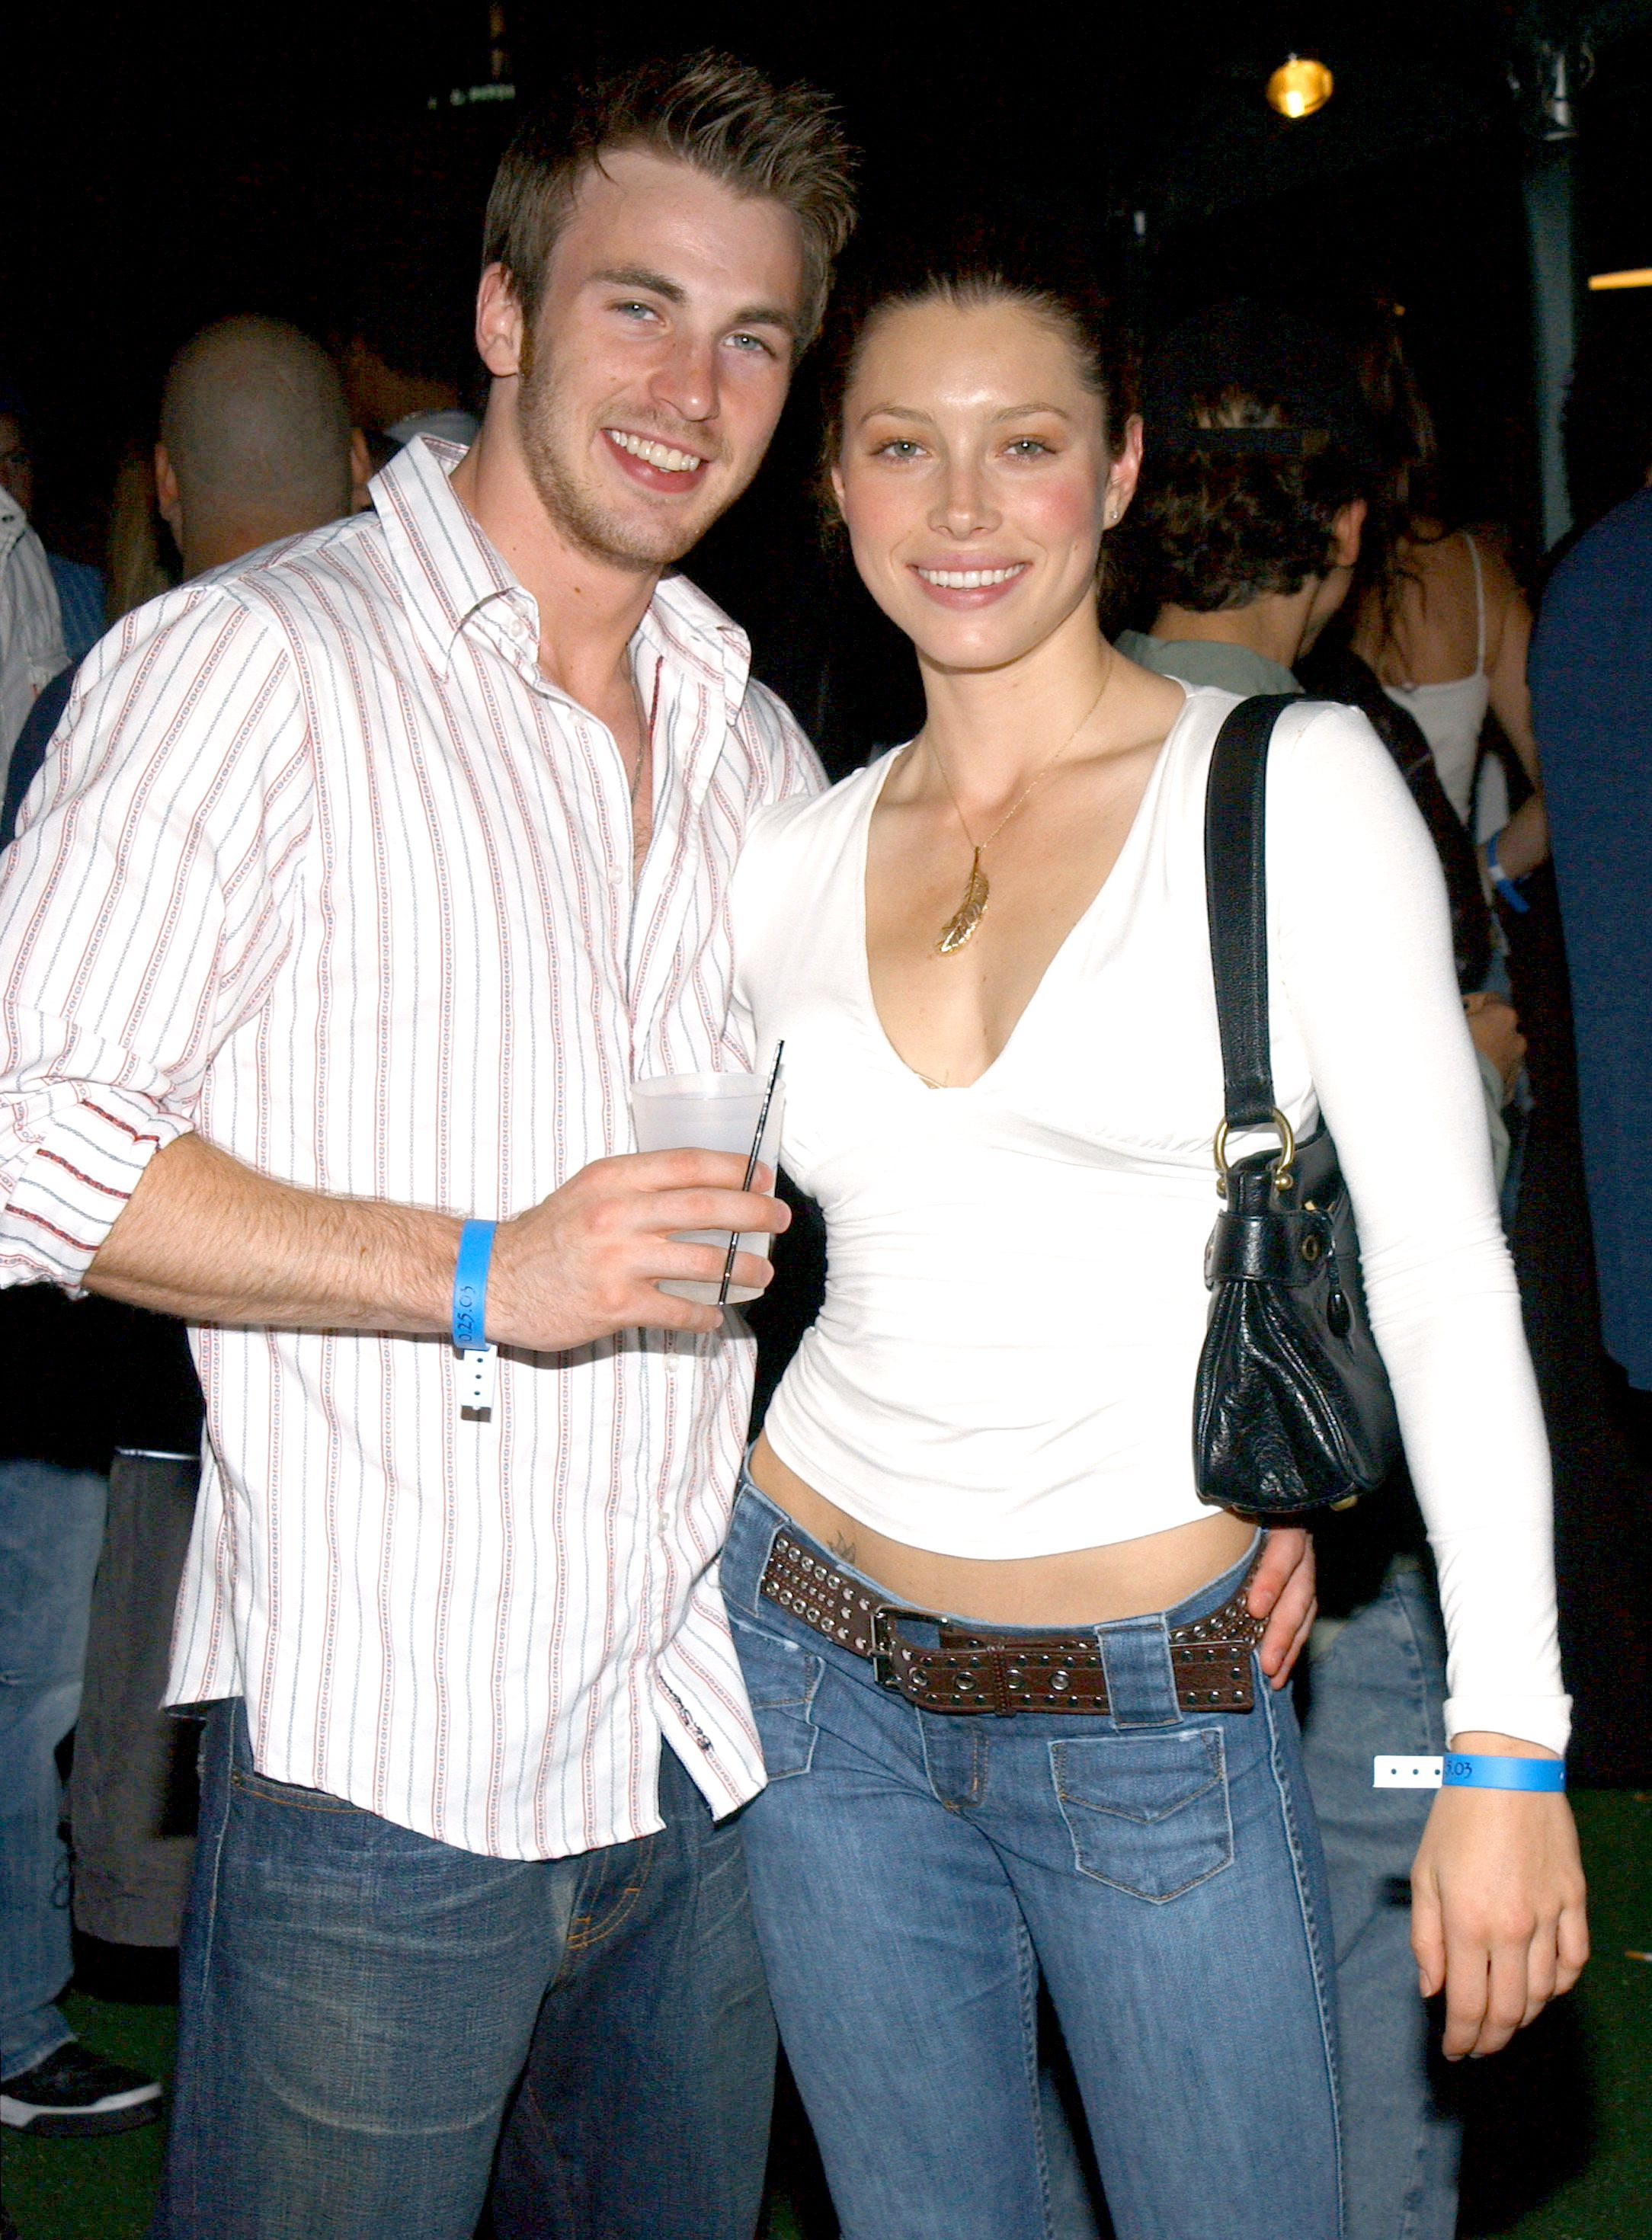 Is jessica biel still dating chris evans